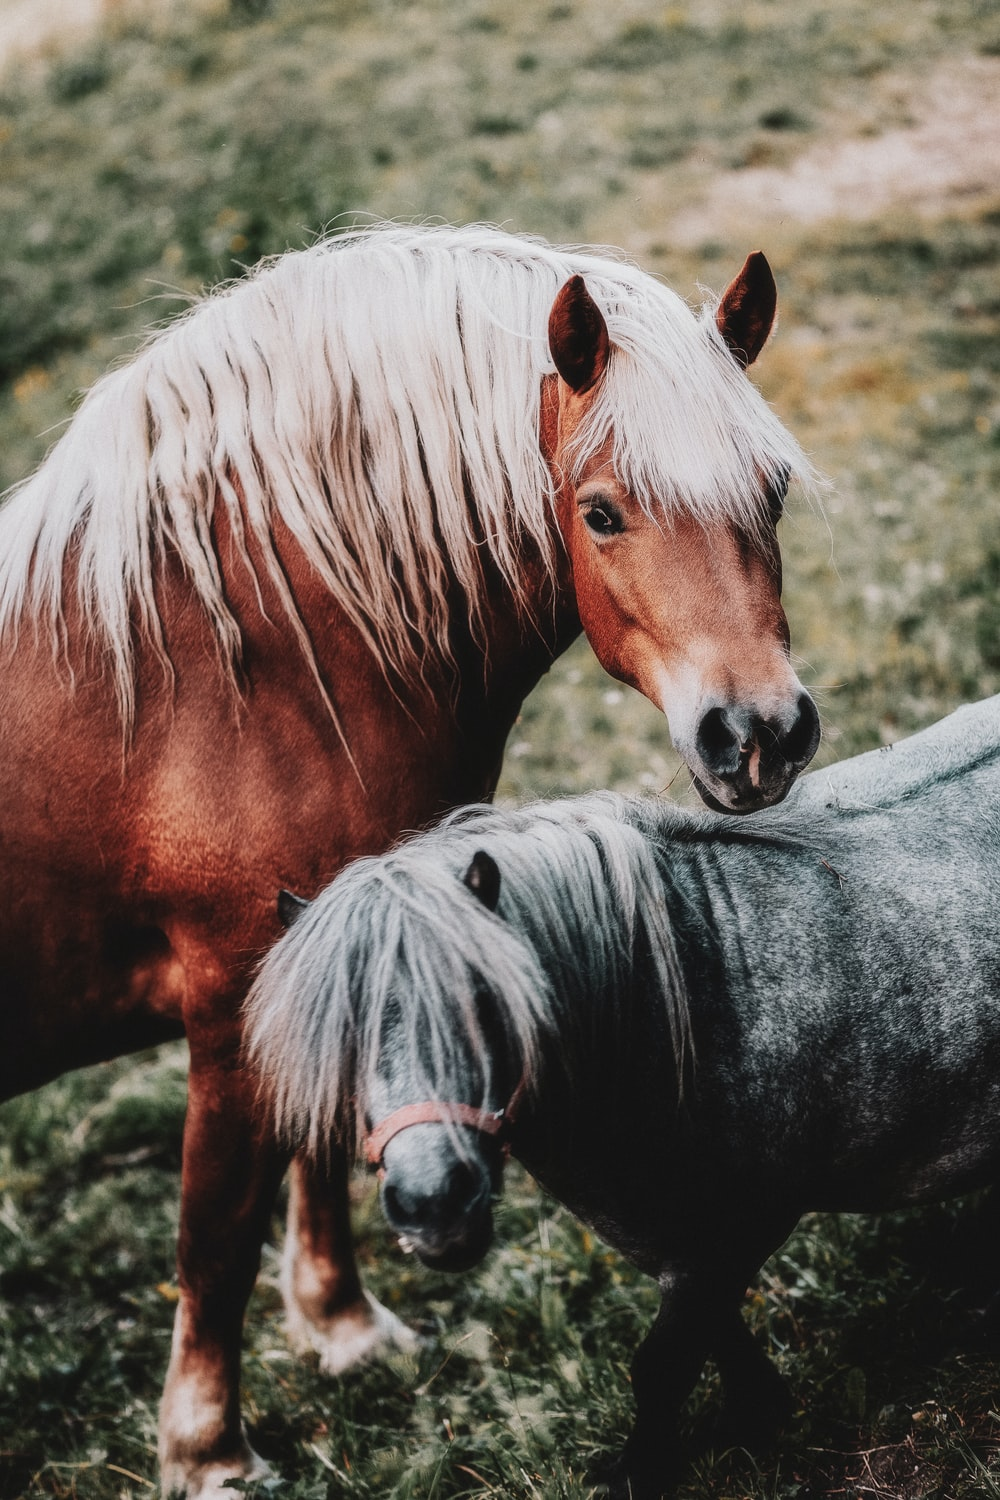 brown and gray horses together on grassland